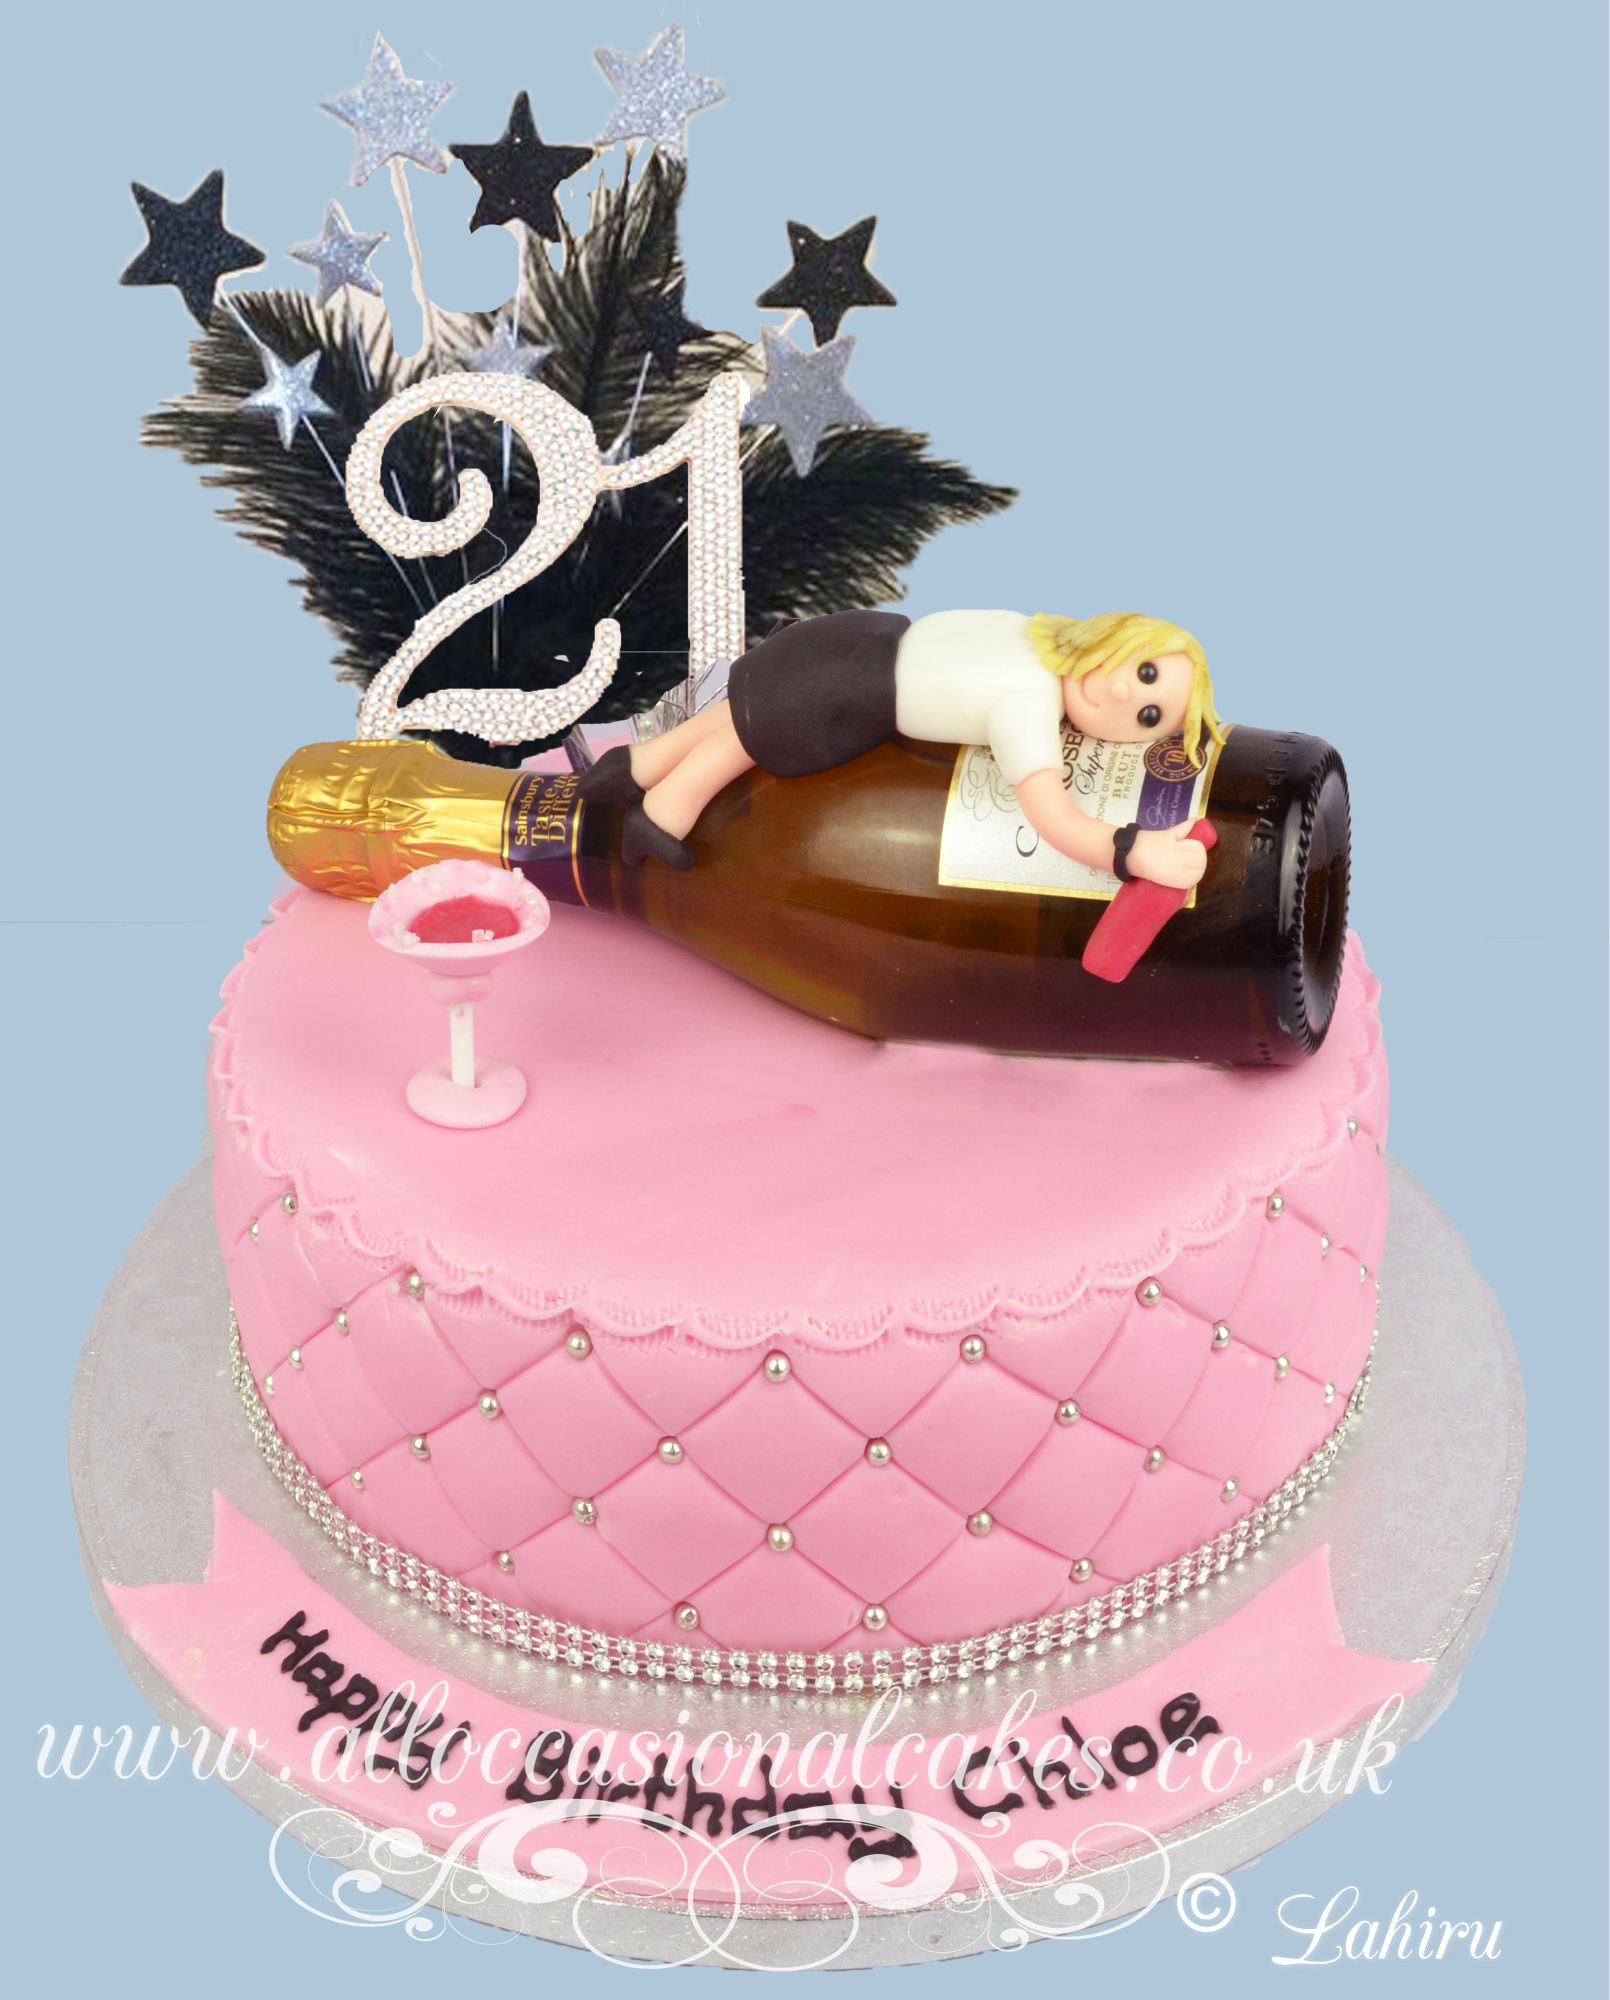 drunk girl 21st birthday cake